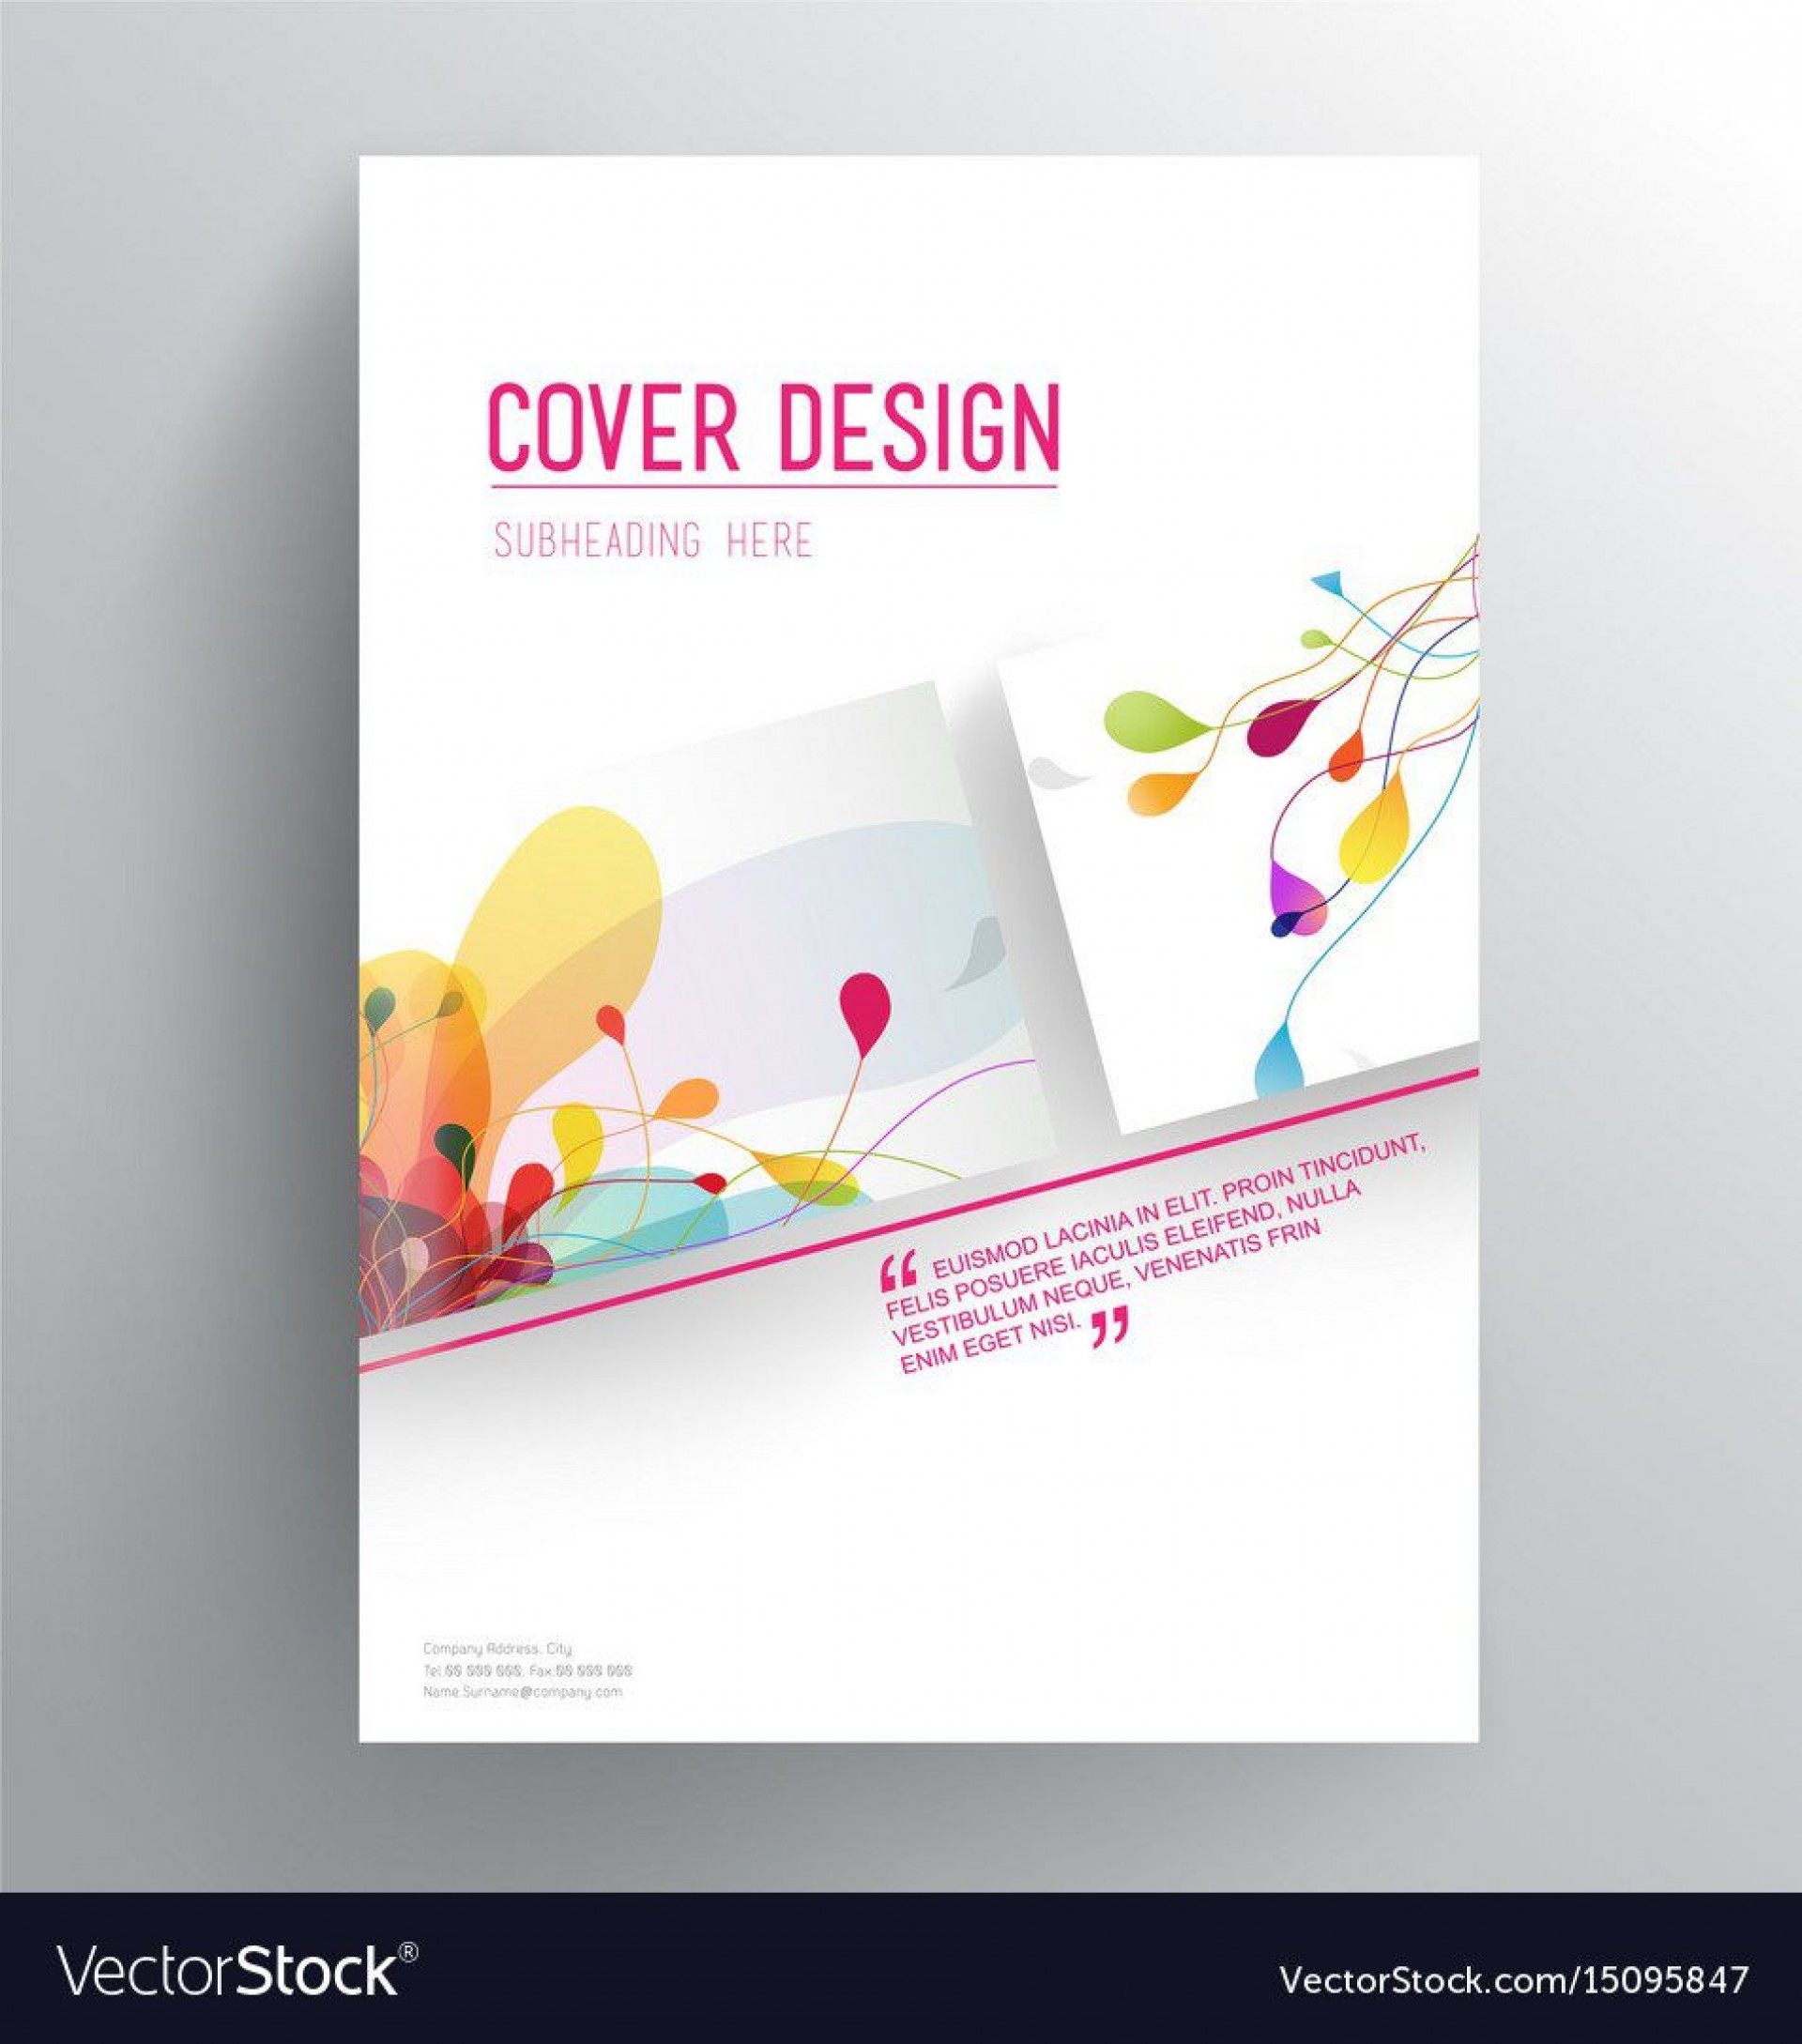 005 Exceptional Book Front Page Design Template Free Download Example  Cover Psd1920